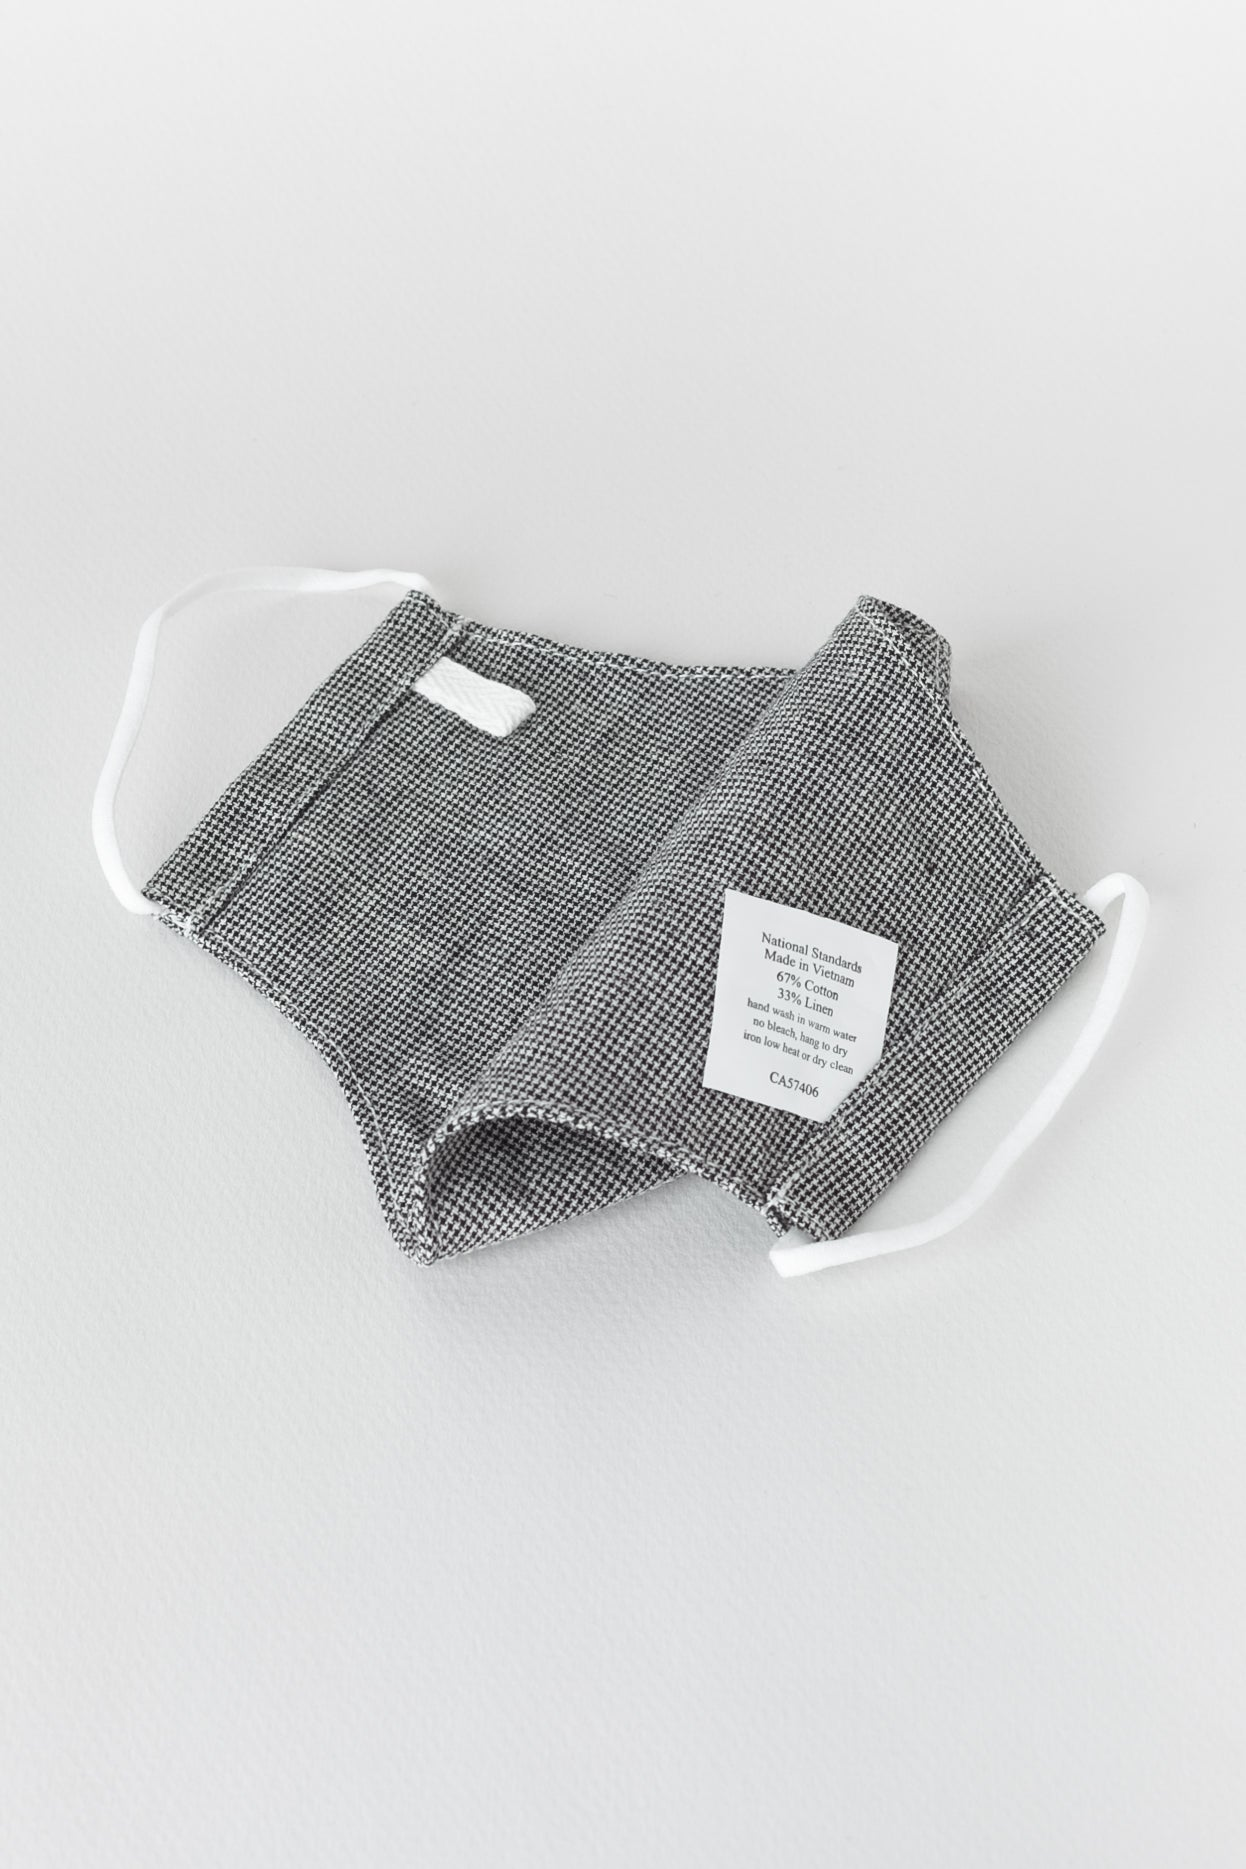 Japanese Mini Houndstooth Face Mask in Black and White 02